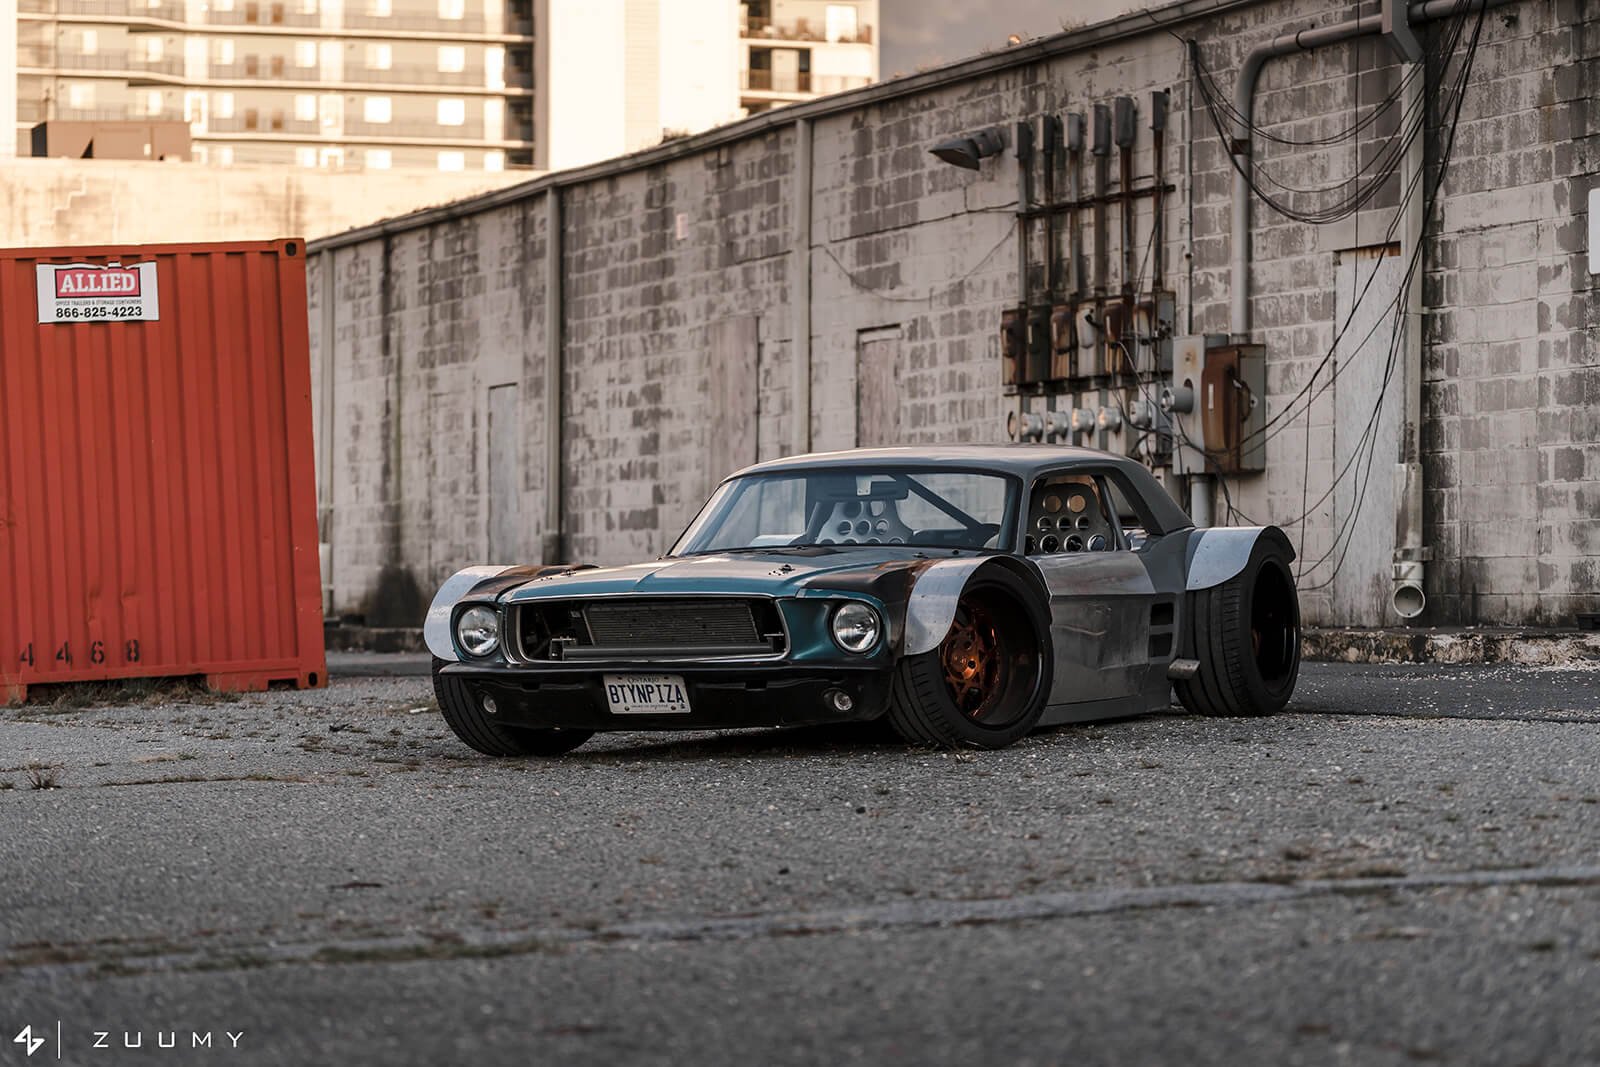 Mustang Ford 1967 Corvette C5 Ls Swap mad max Kyle Scaife